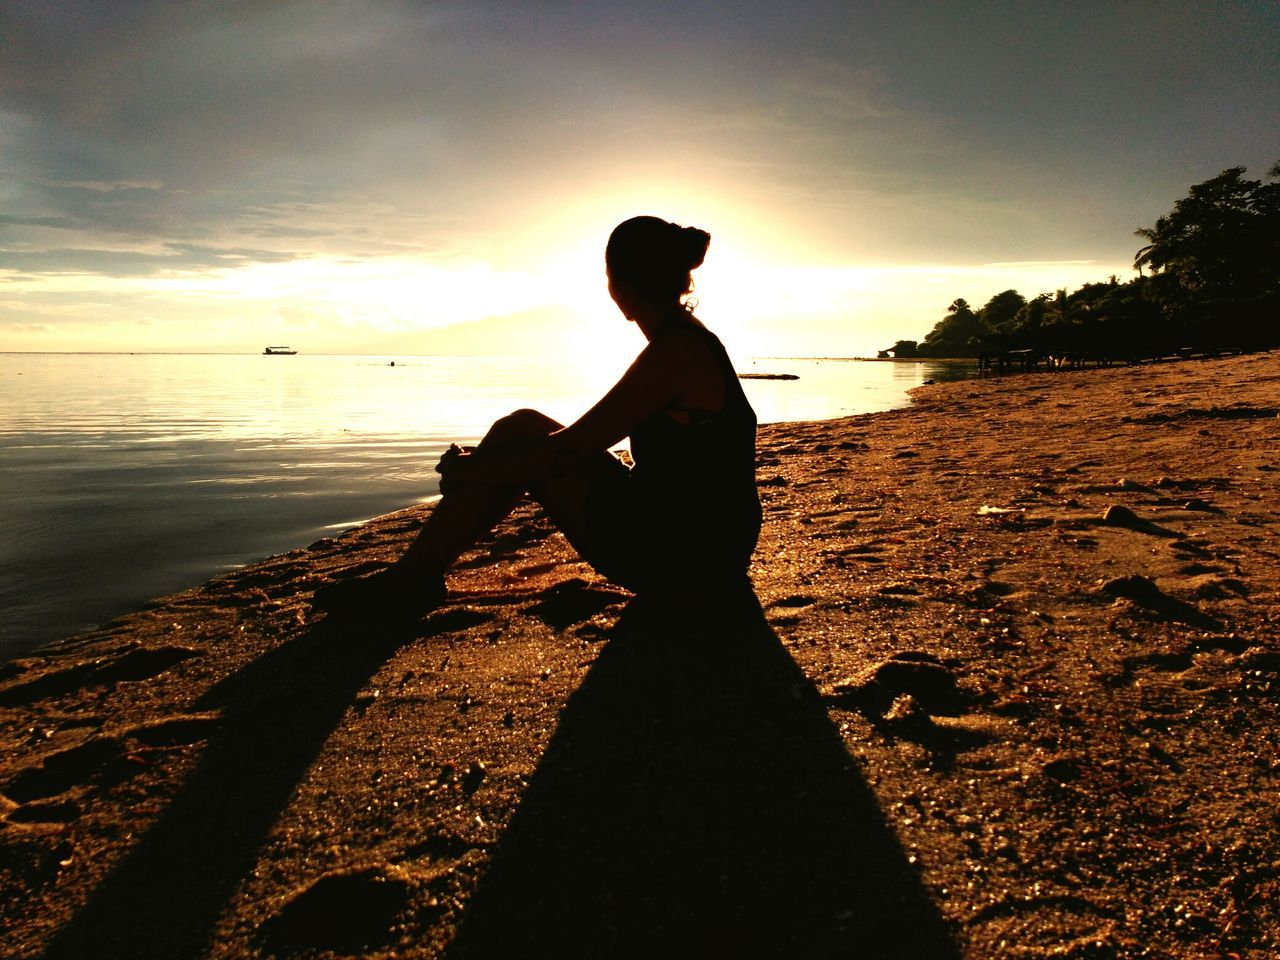 silhouette, one person, sunset, water, tranquil scene, beach, side view, sea, real people, tranquility, nature, sky, sitting, scenics, beauty in nature, outdoors, horizon over water, full length, leisure activity, standing, women, lifestyles, vacations, day, tree, young adult, people